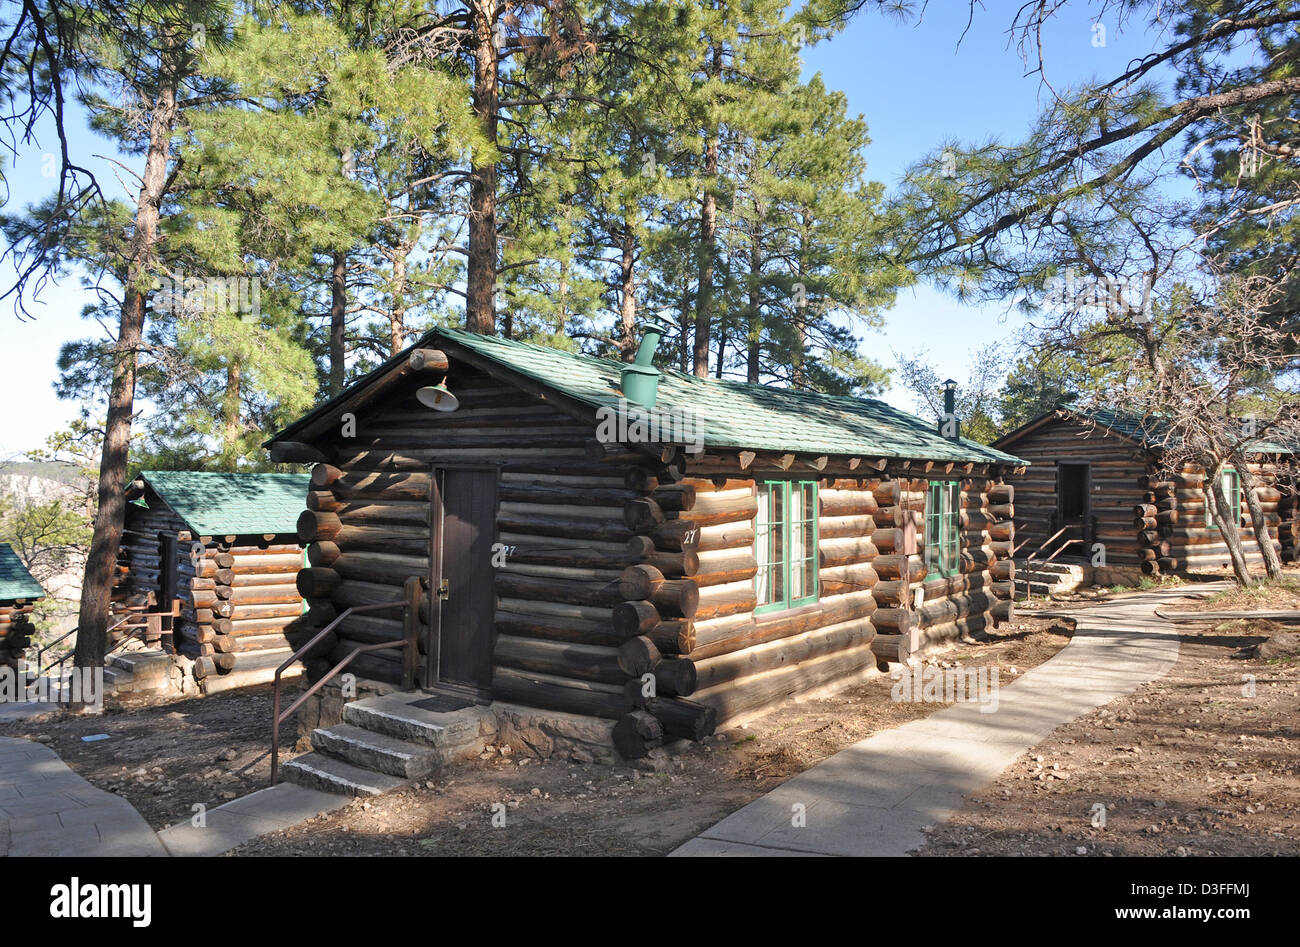 cabin you of canyon grand cabins south exceptional not just rim close there att x re park lodges national in photo